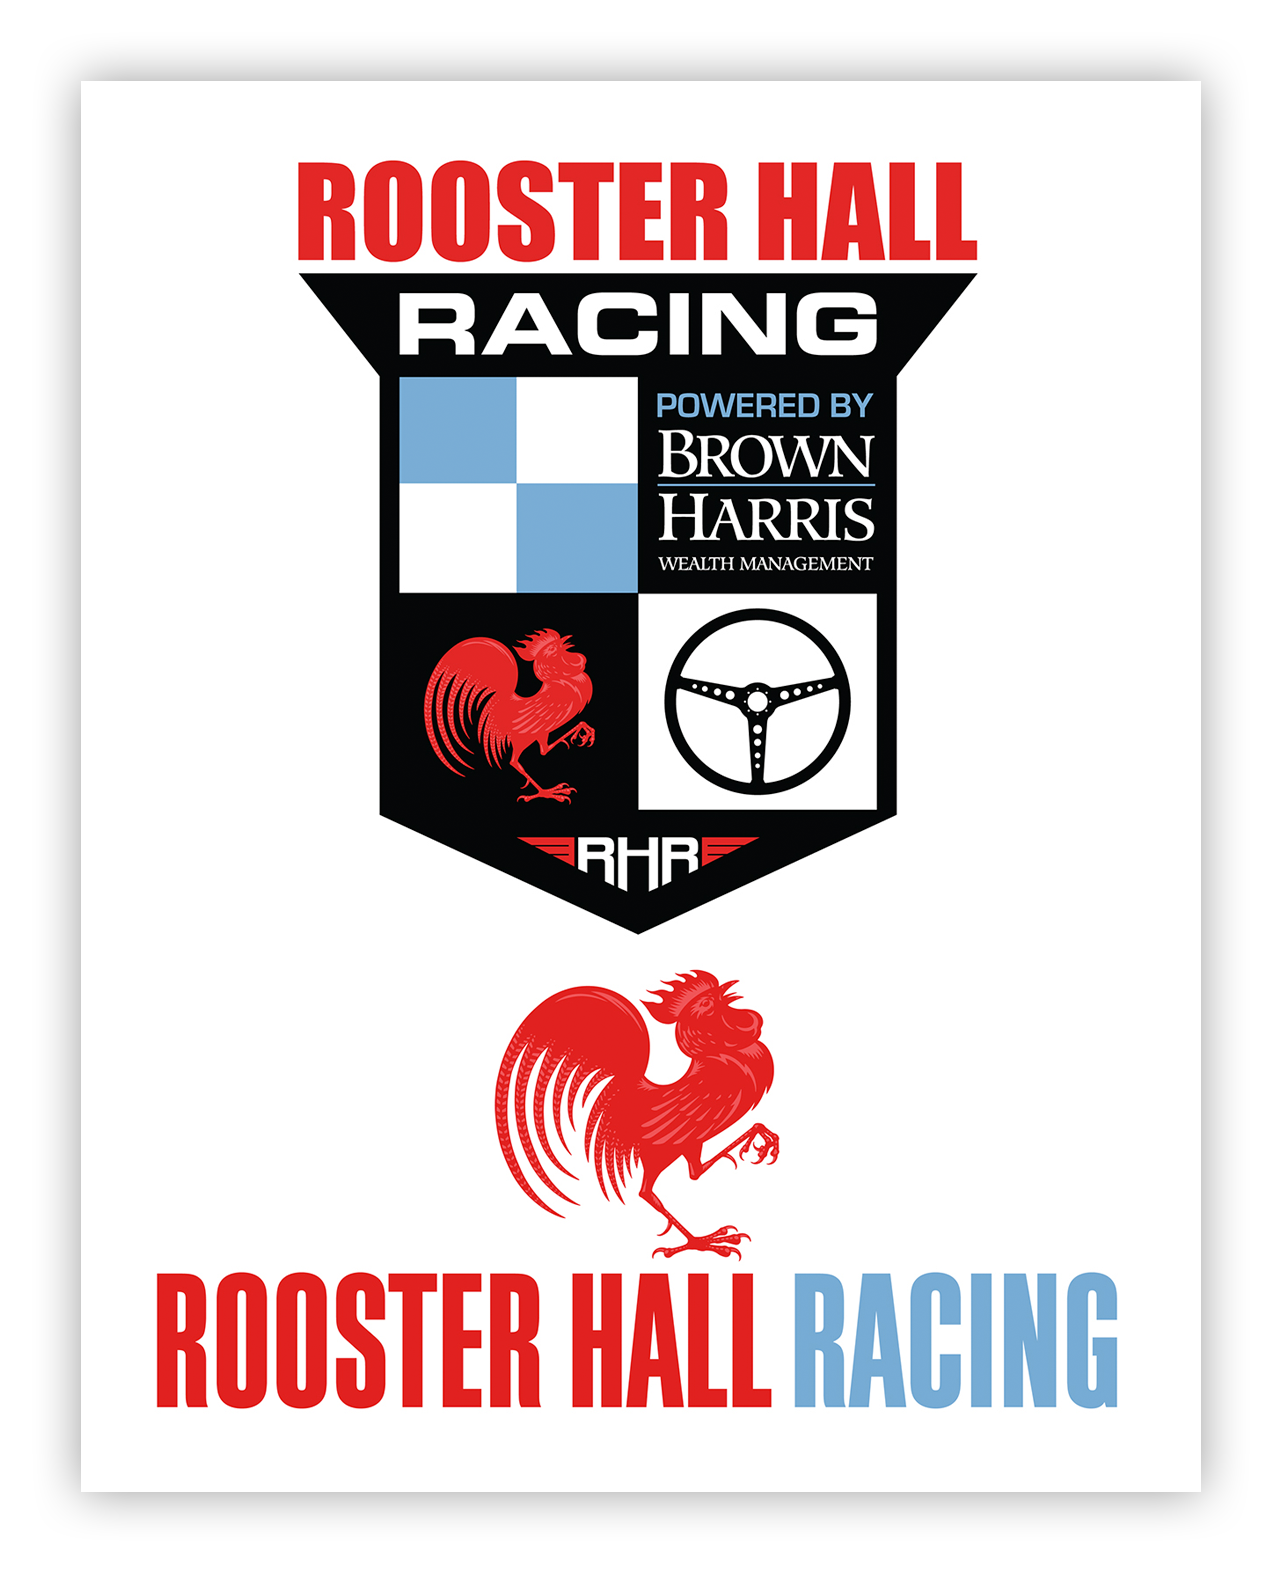 Rooster-Hall-Racing-Auto-Race-Team-Logos-portfolio